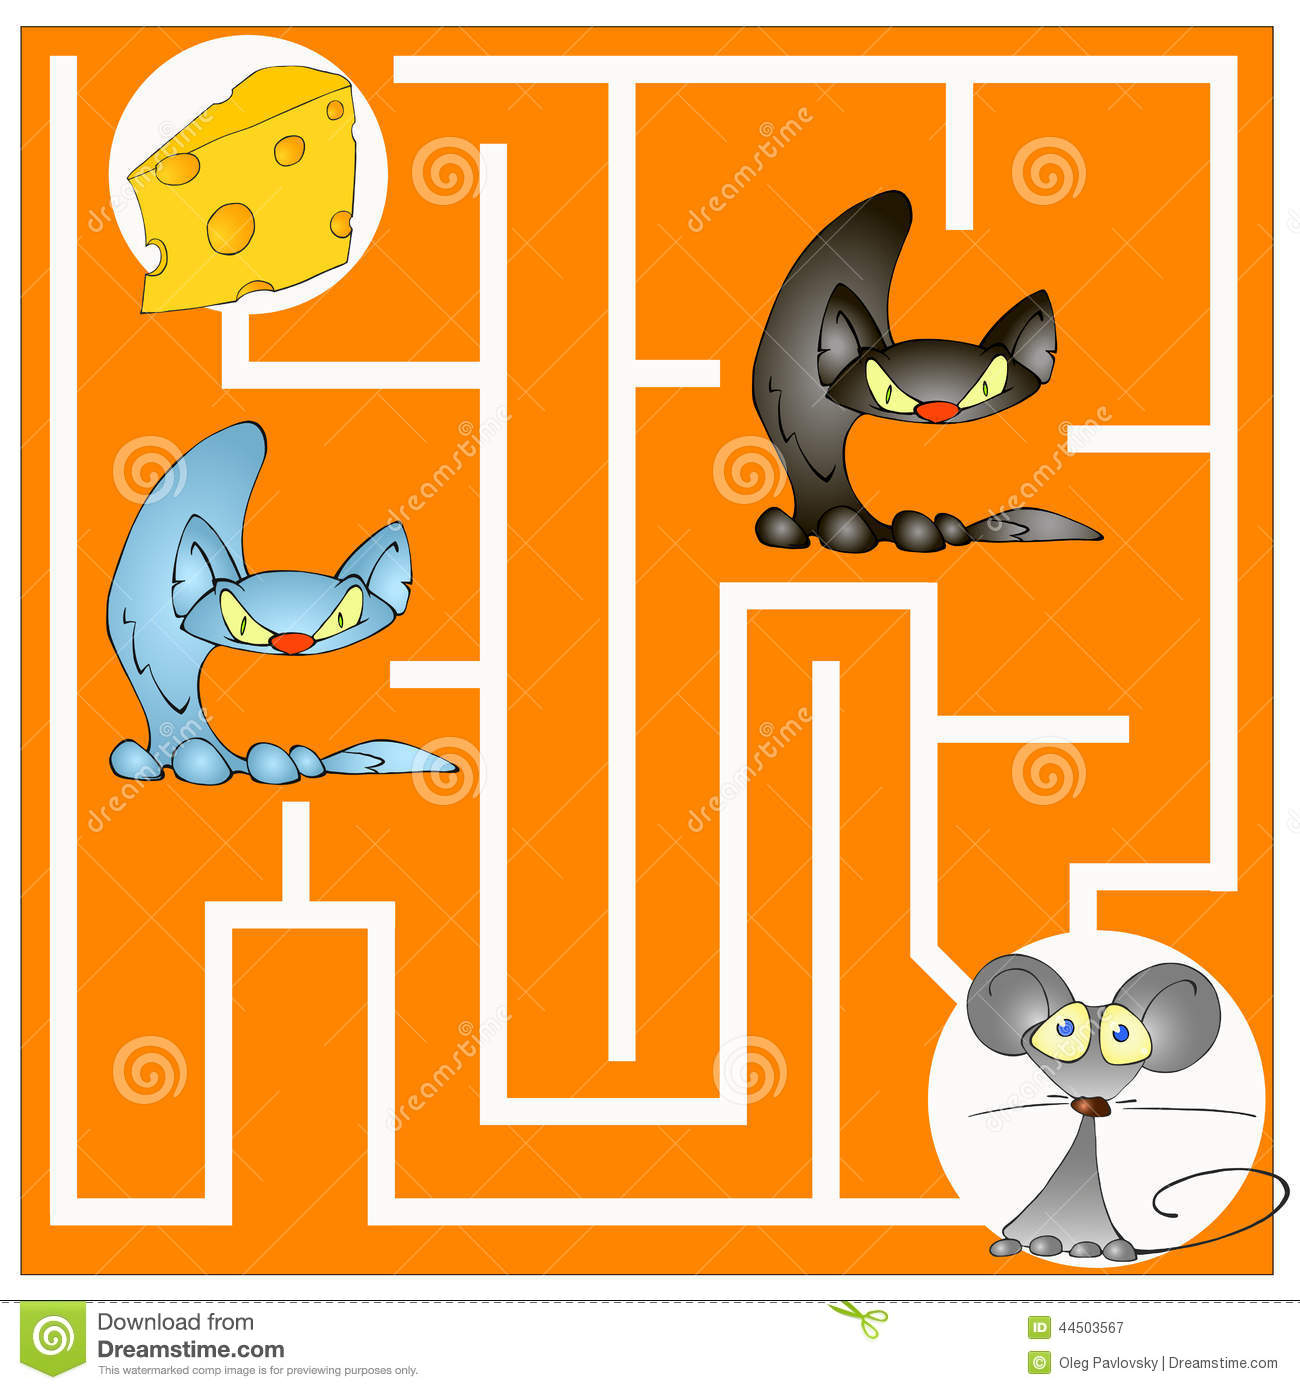 cat and mouse games dating for kids